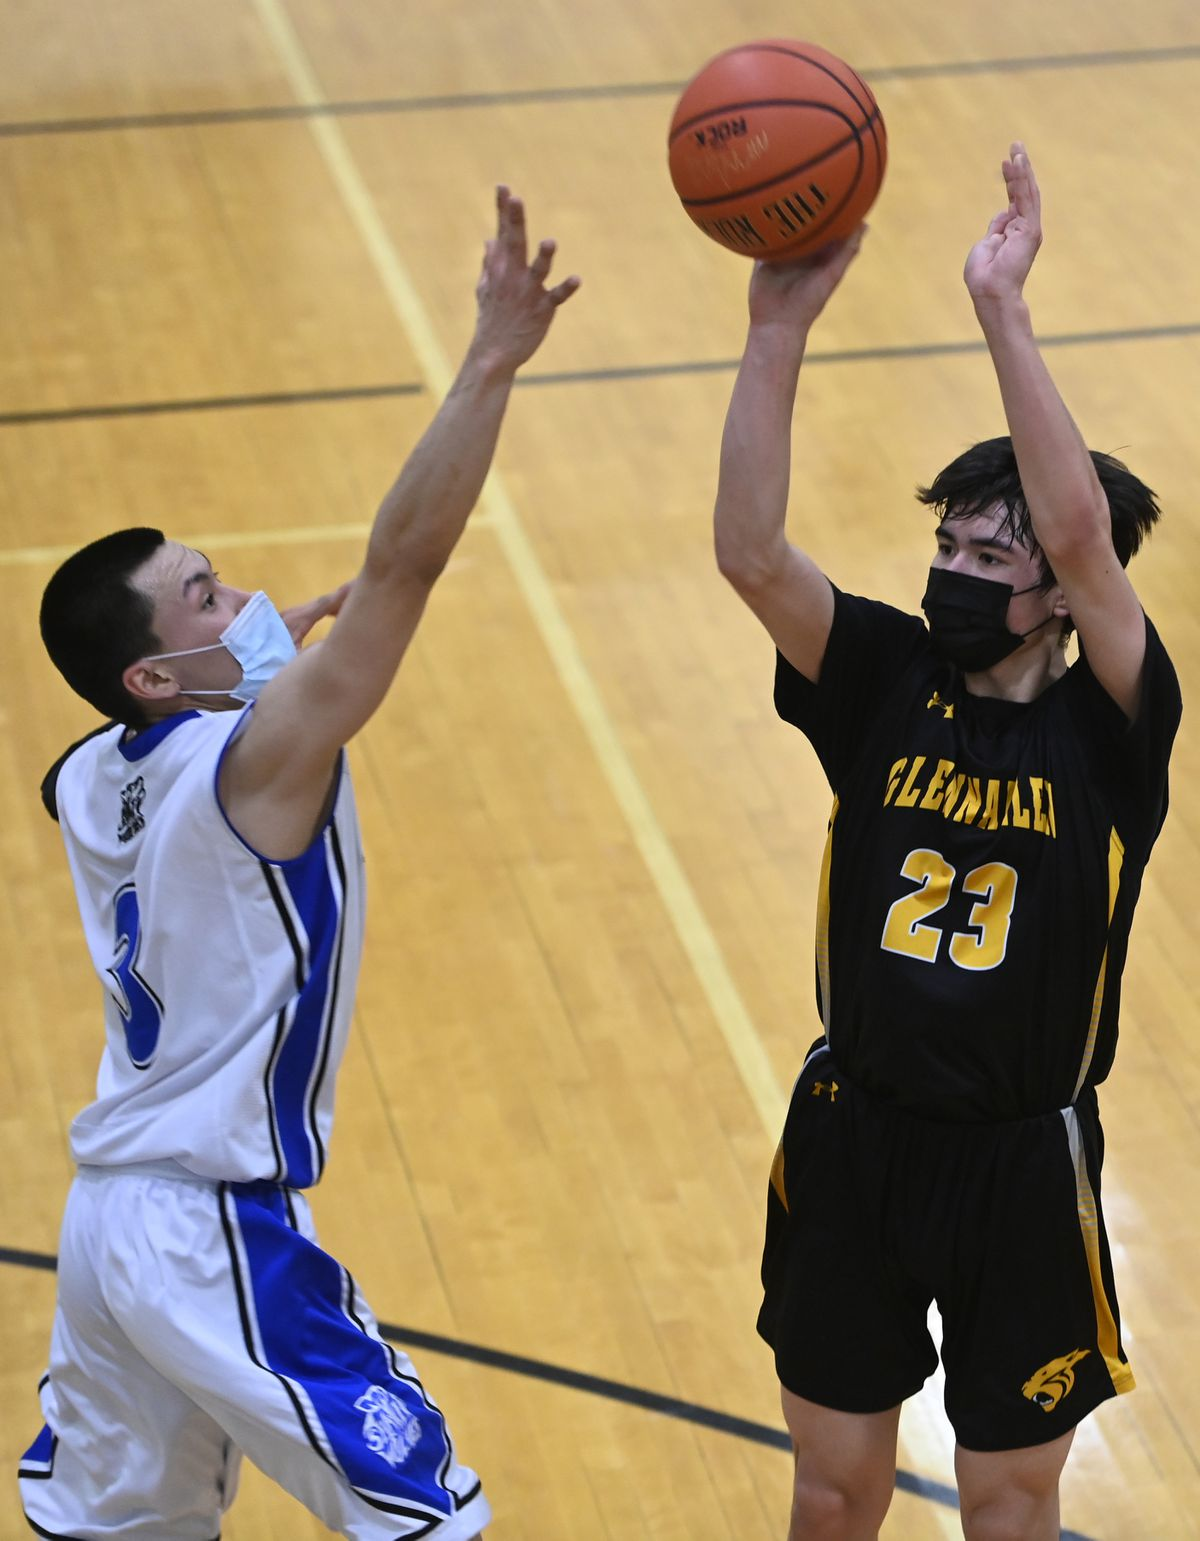 Glennallen junior Hunter Terrel puts up a shot as Selawik senior Axel Snyder defends during the Panthers' 67-46 victory Thursday at the Class 2A state basketball tournament in Palmer. (Bill Roth / ADN)